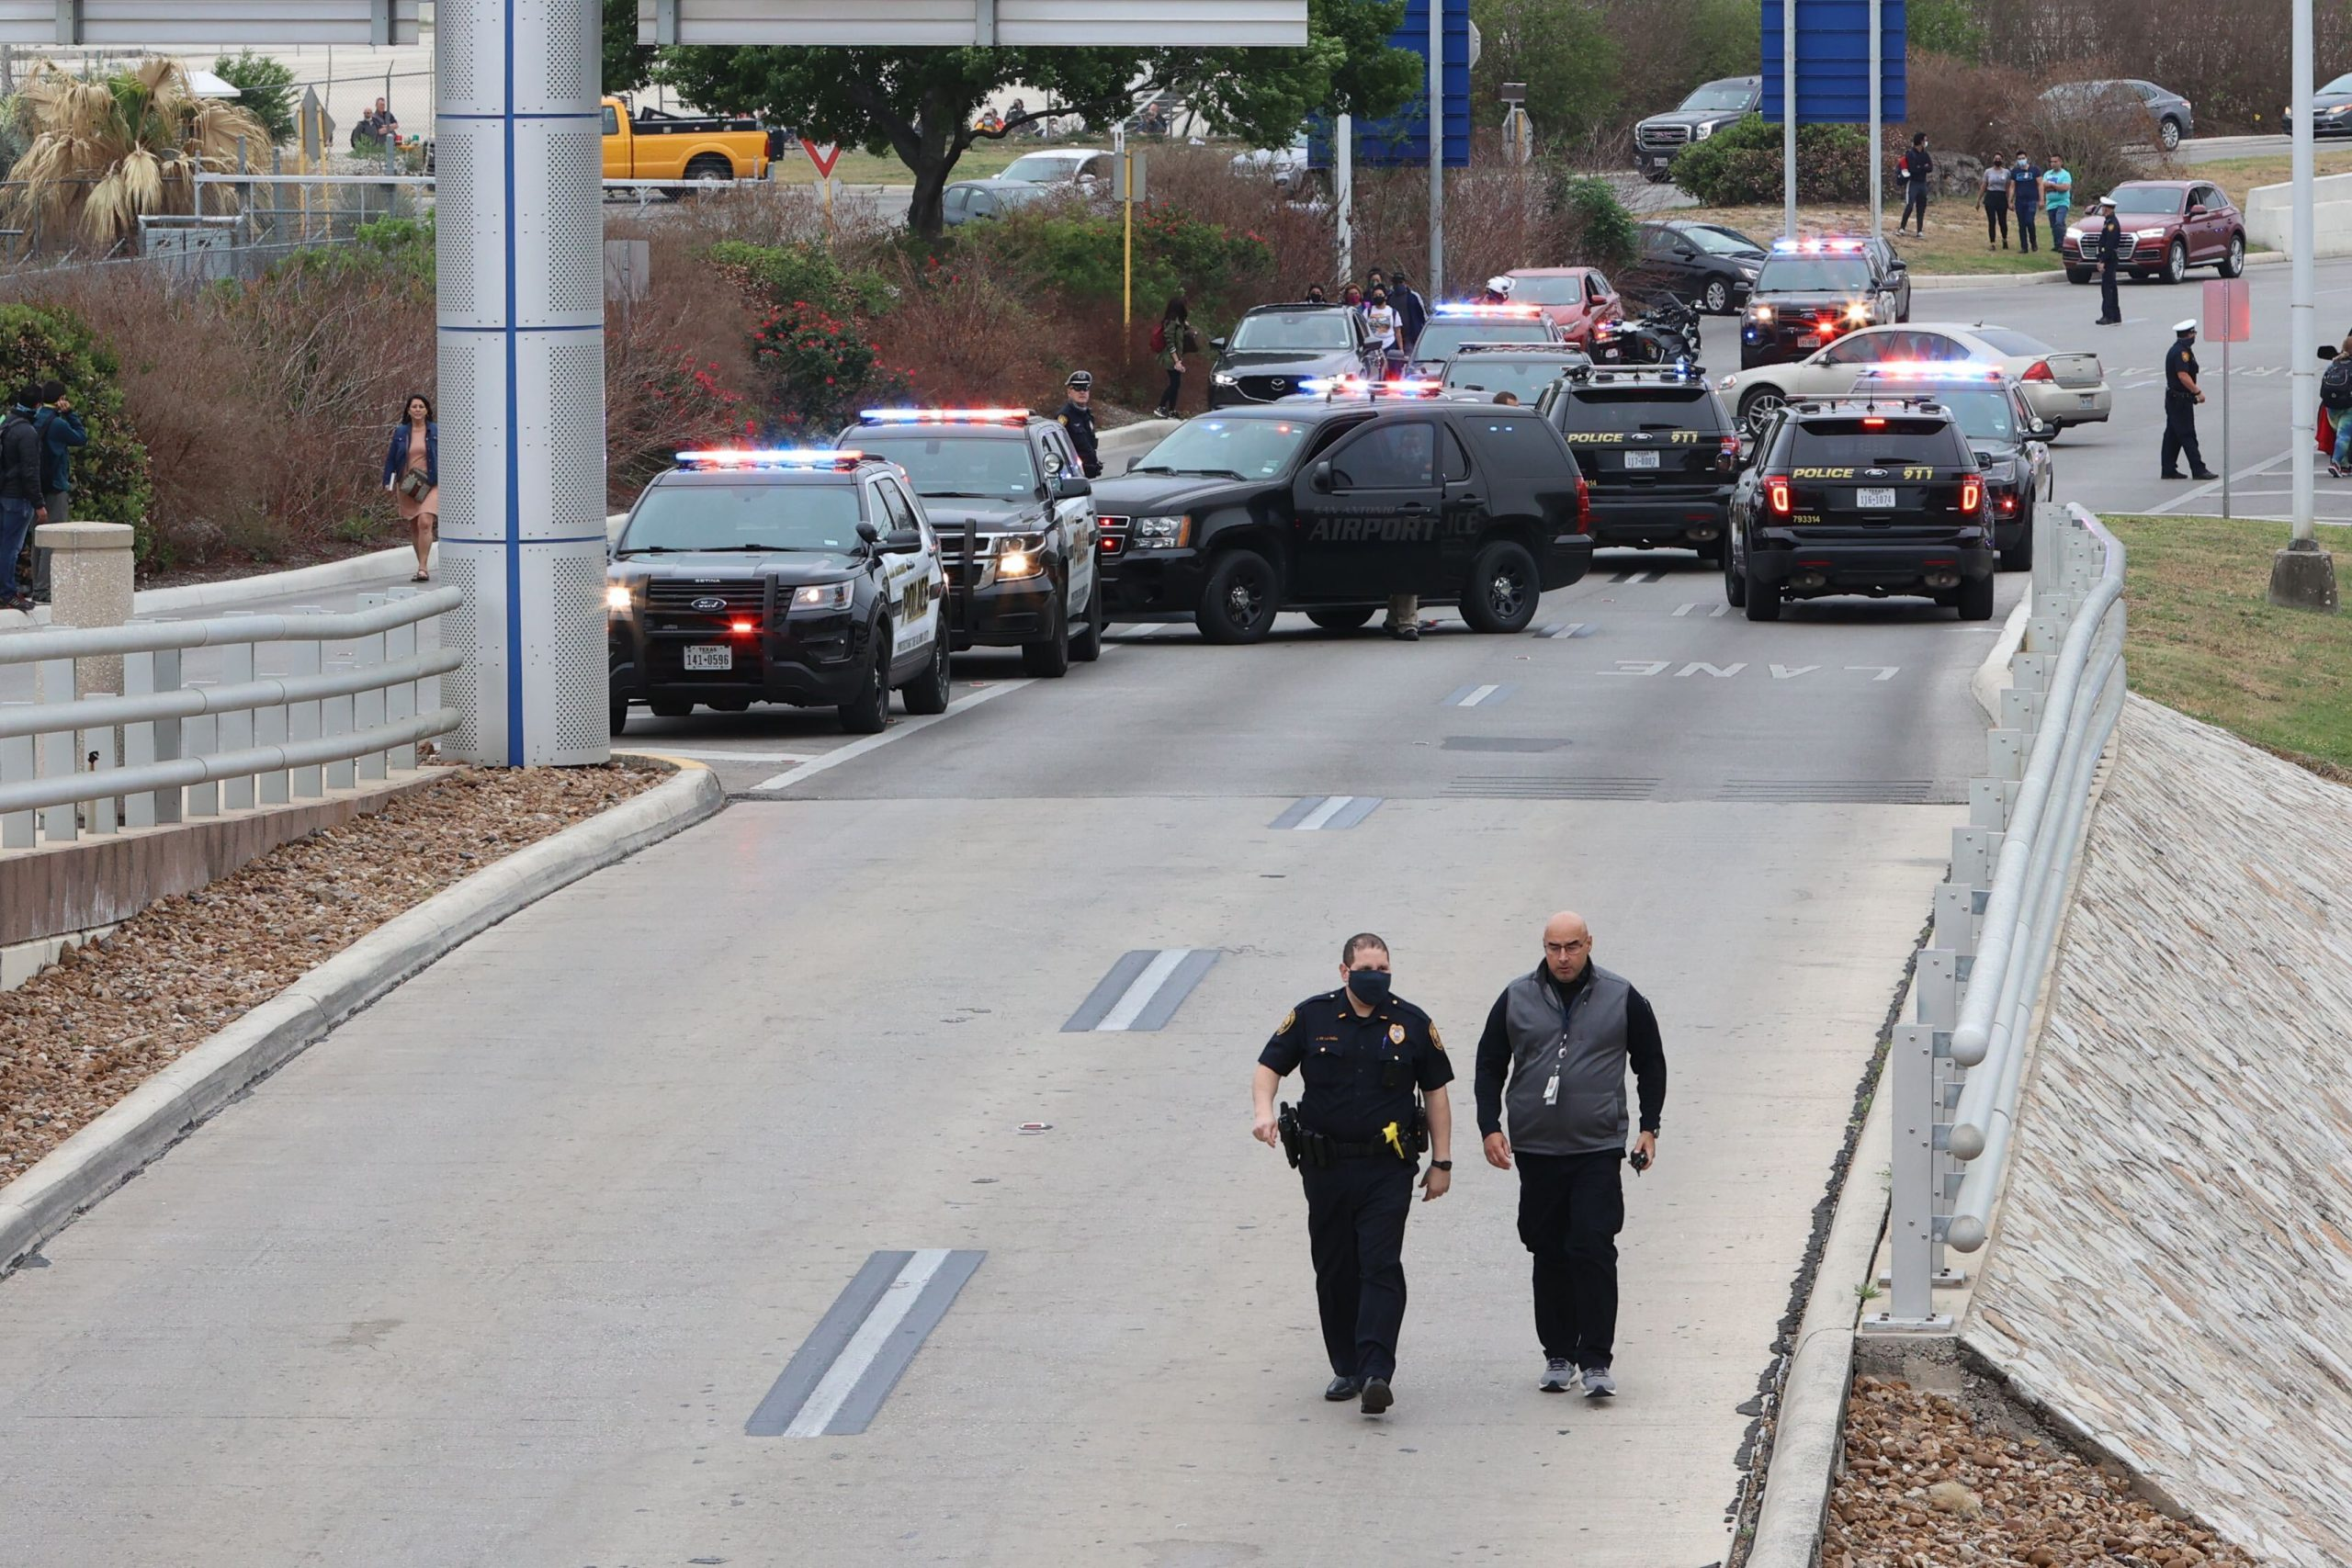 Police chief: Officer who brought down airport shooter 'saved a lot of lives'